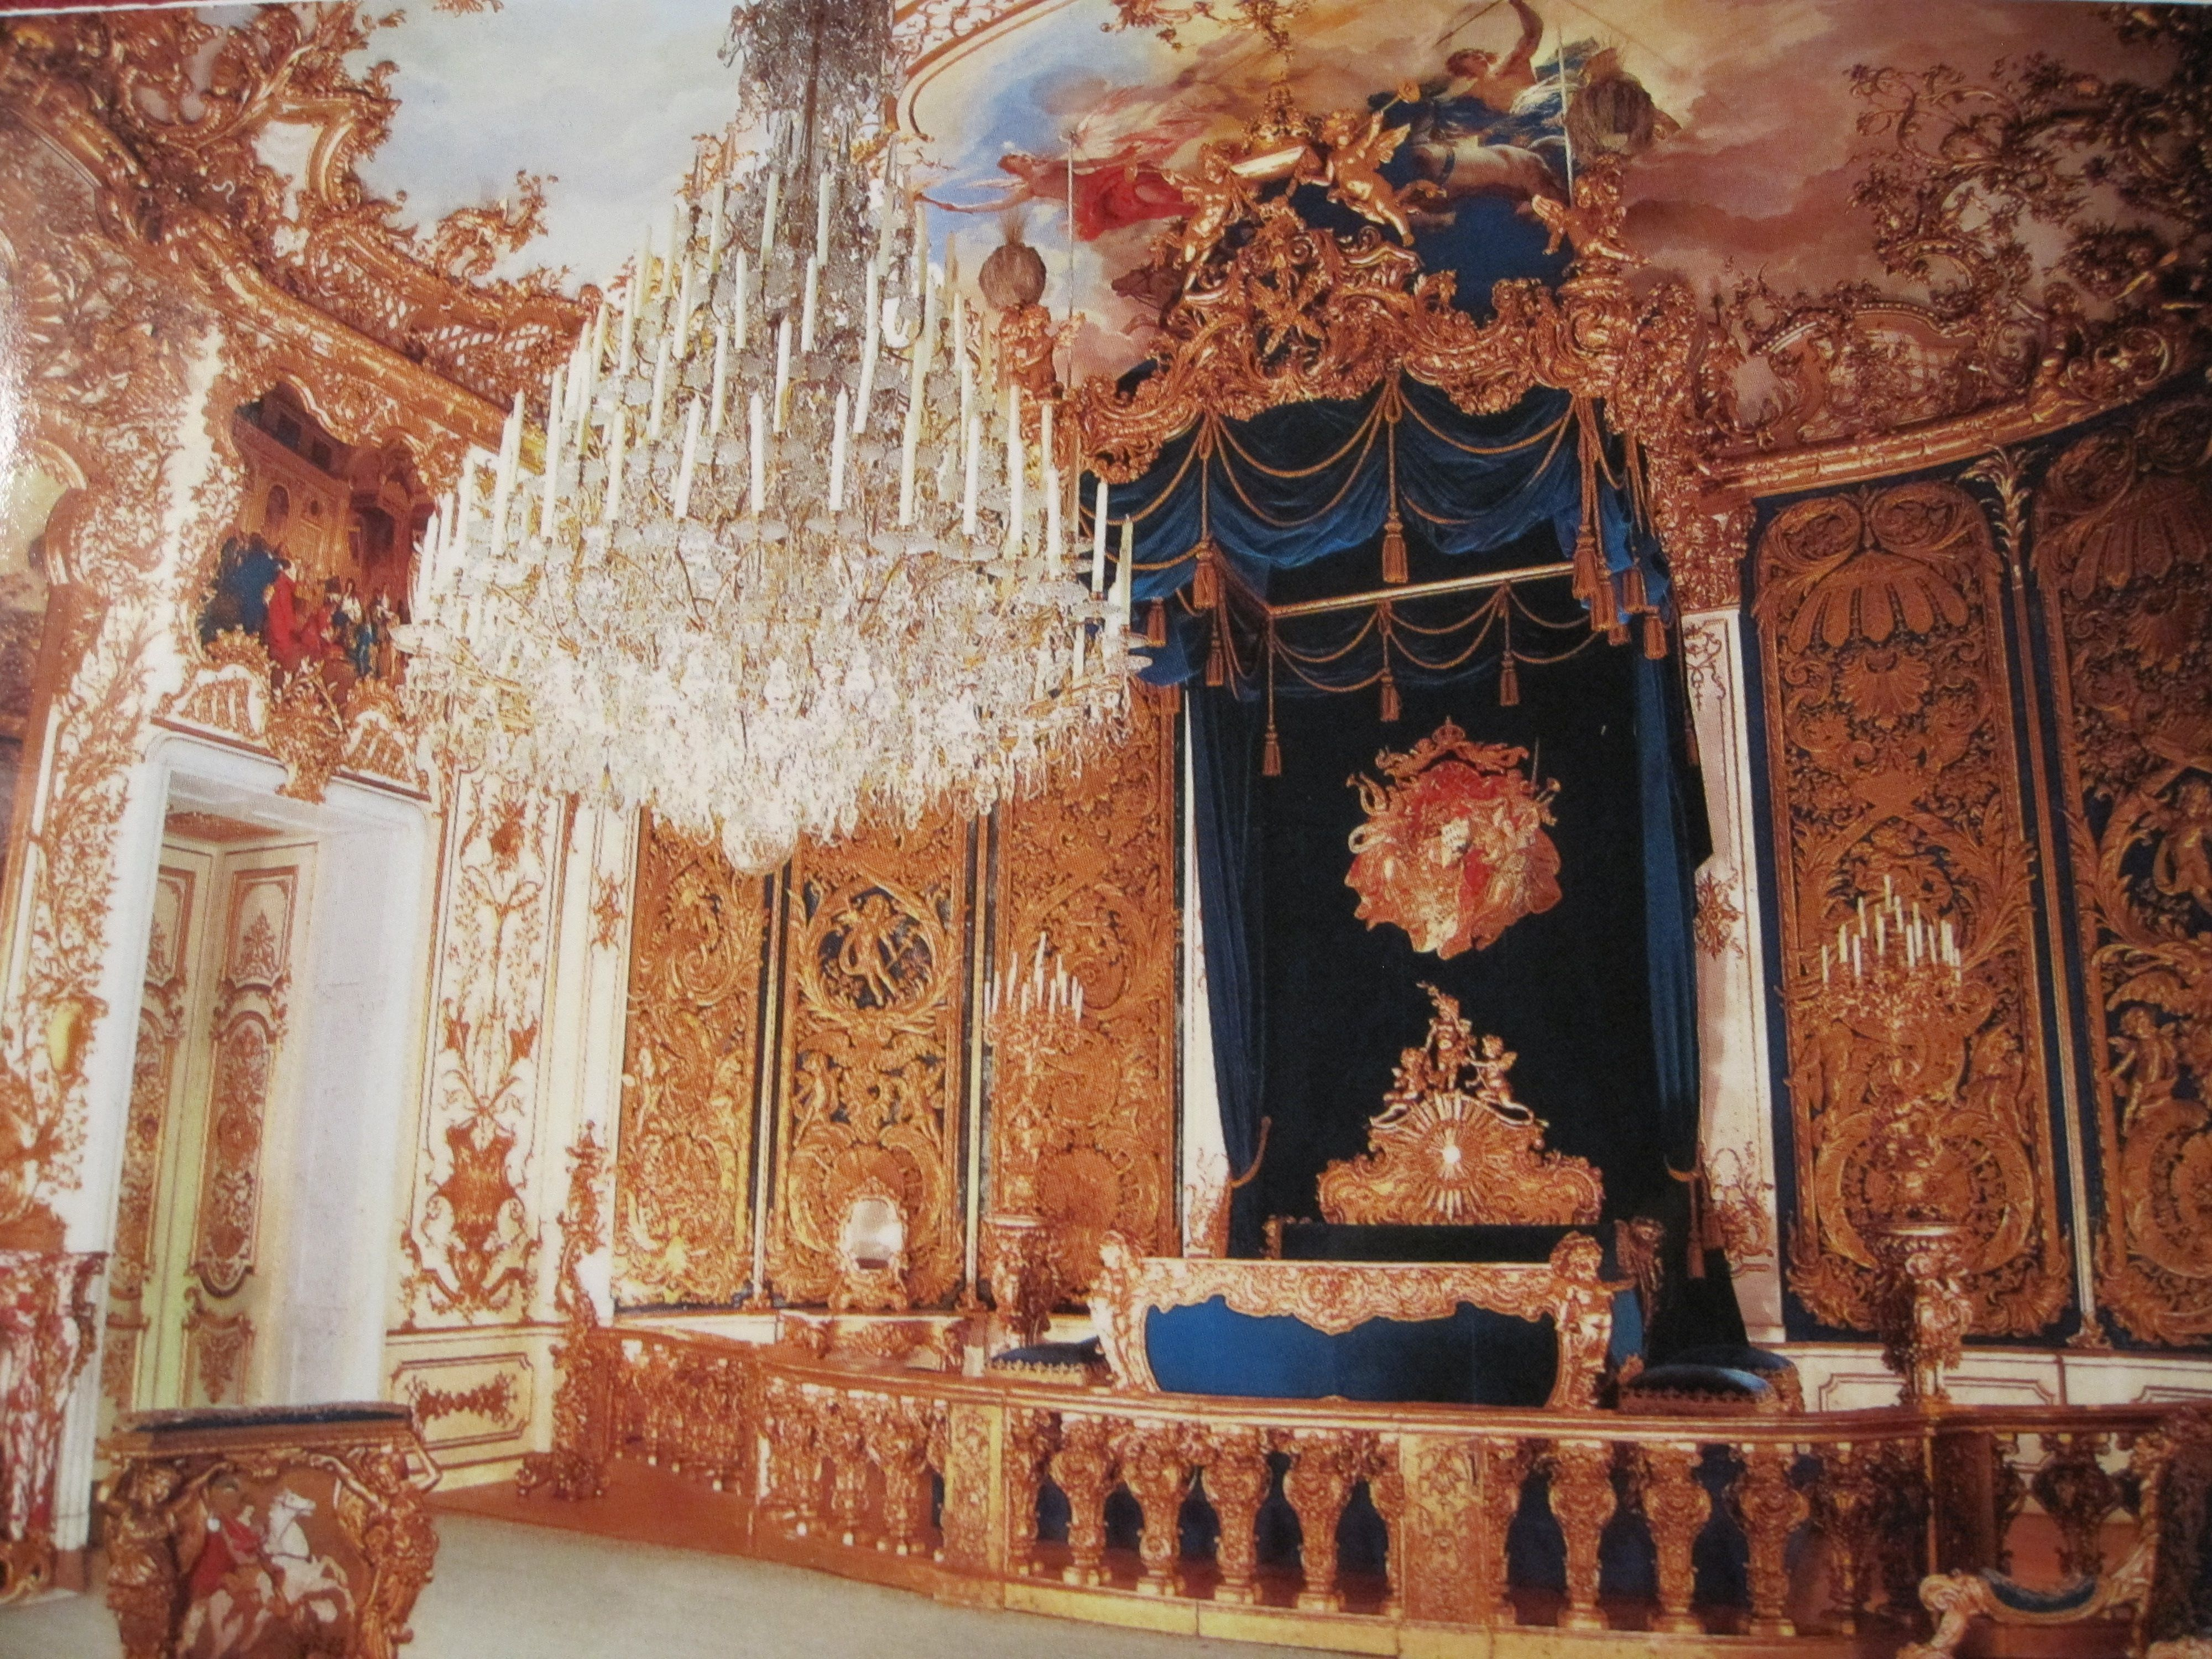 King Ludwig S Bedroom At Linderhof Germany Linderhof Palace Interior Pictures Beautiful Interiors